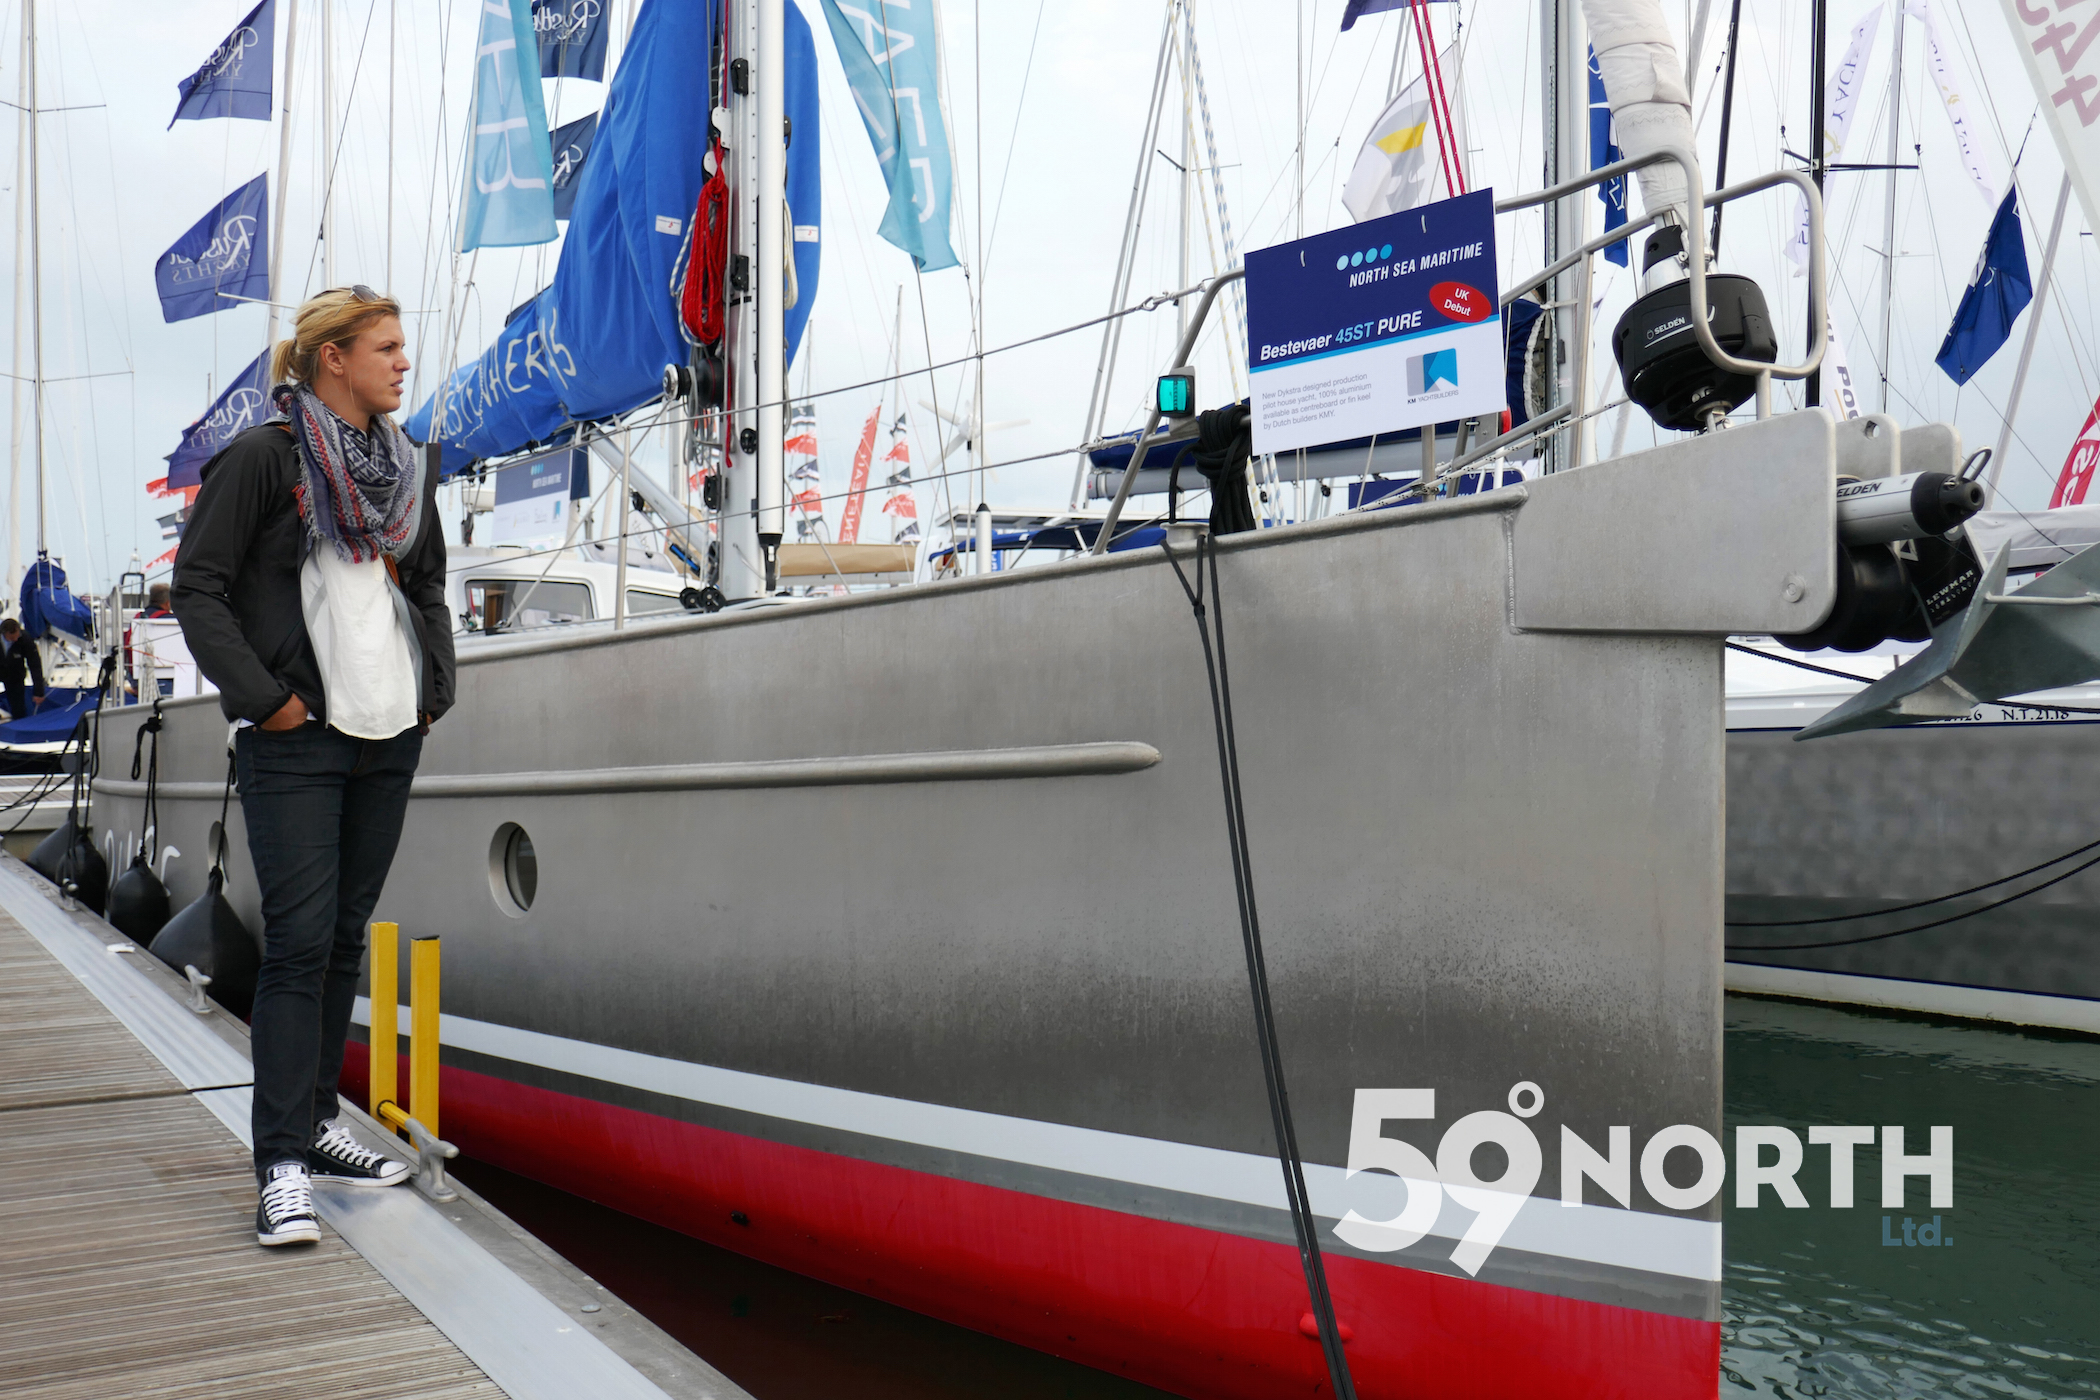 Checking out some cool boats at the Southampton Boat Show, here a Bestevaer Sept . 2016